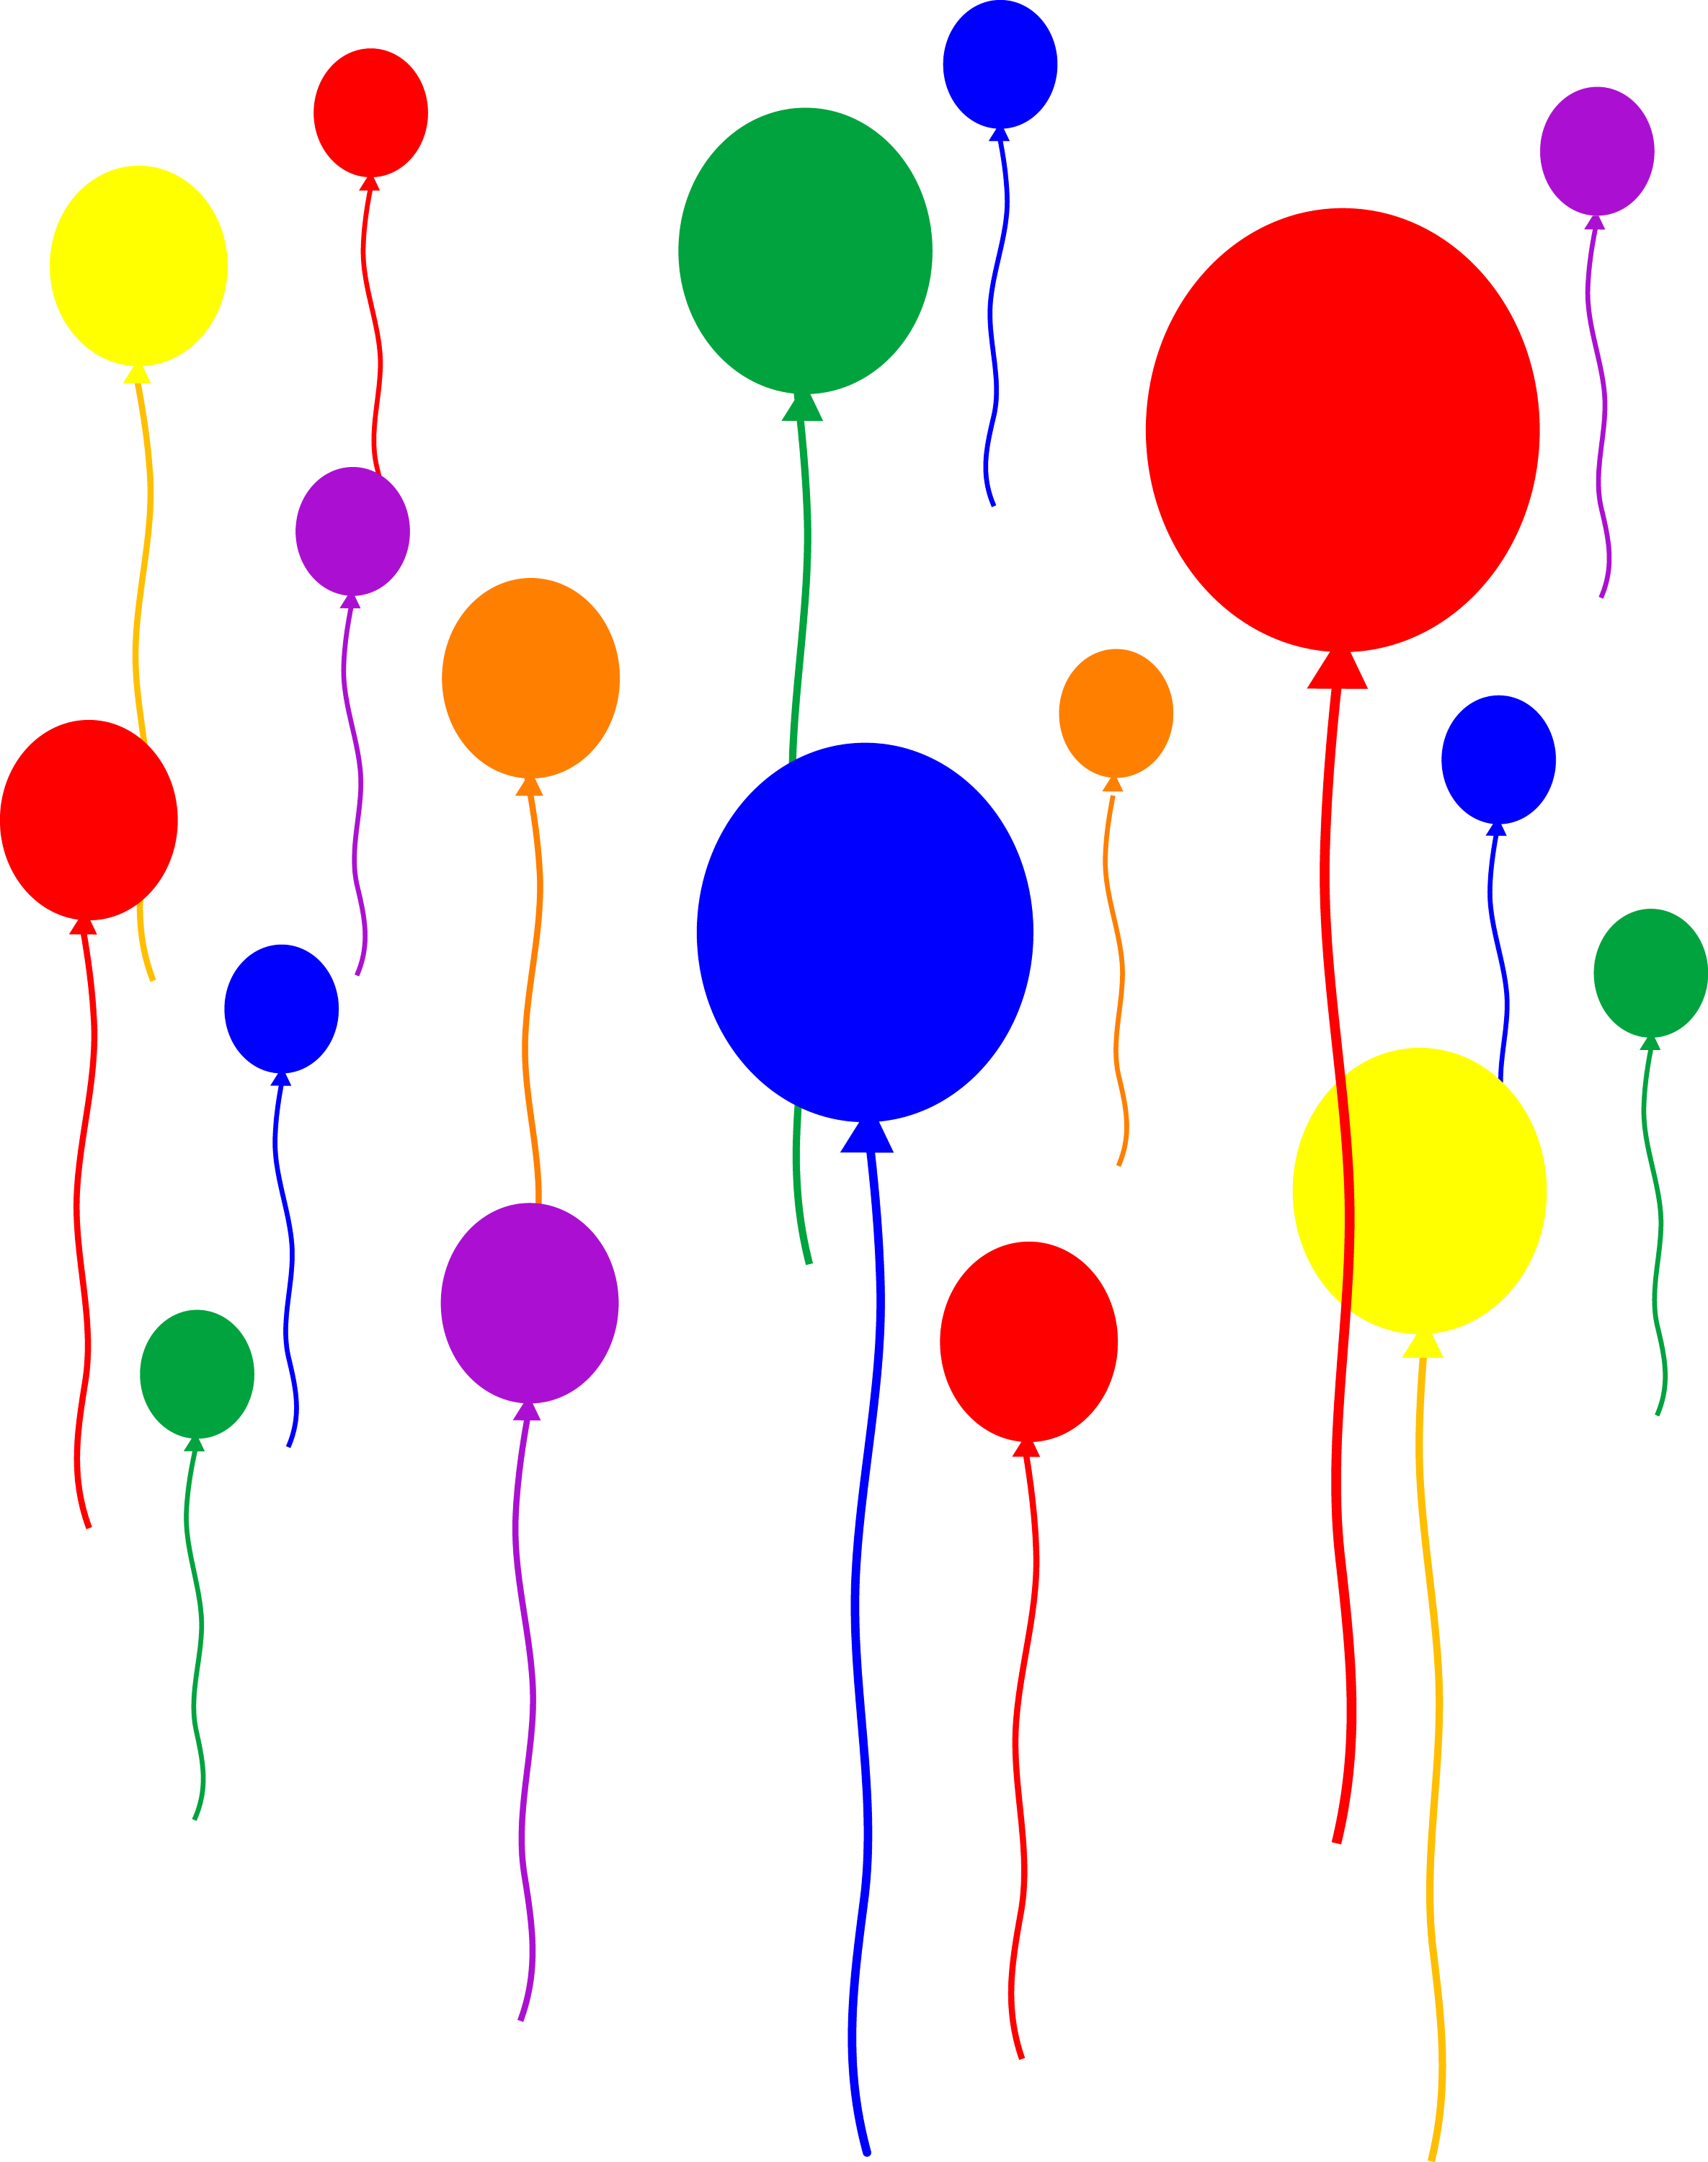 party balloons on transparent background free clip art rh sweetclipart com background clip art free patterns background clip art free download